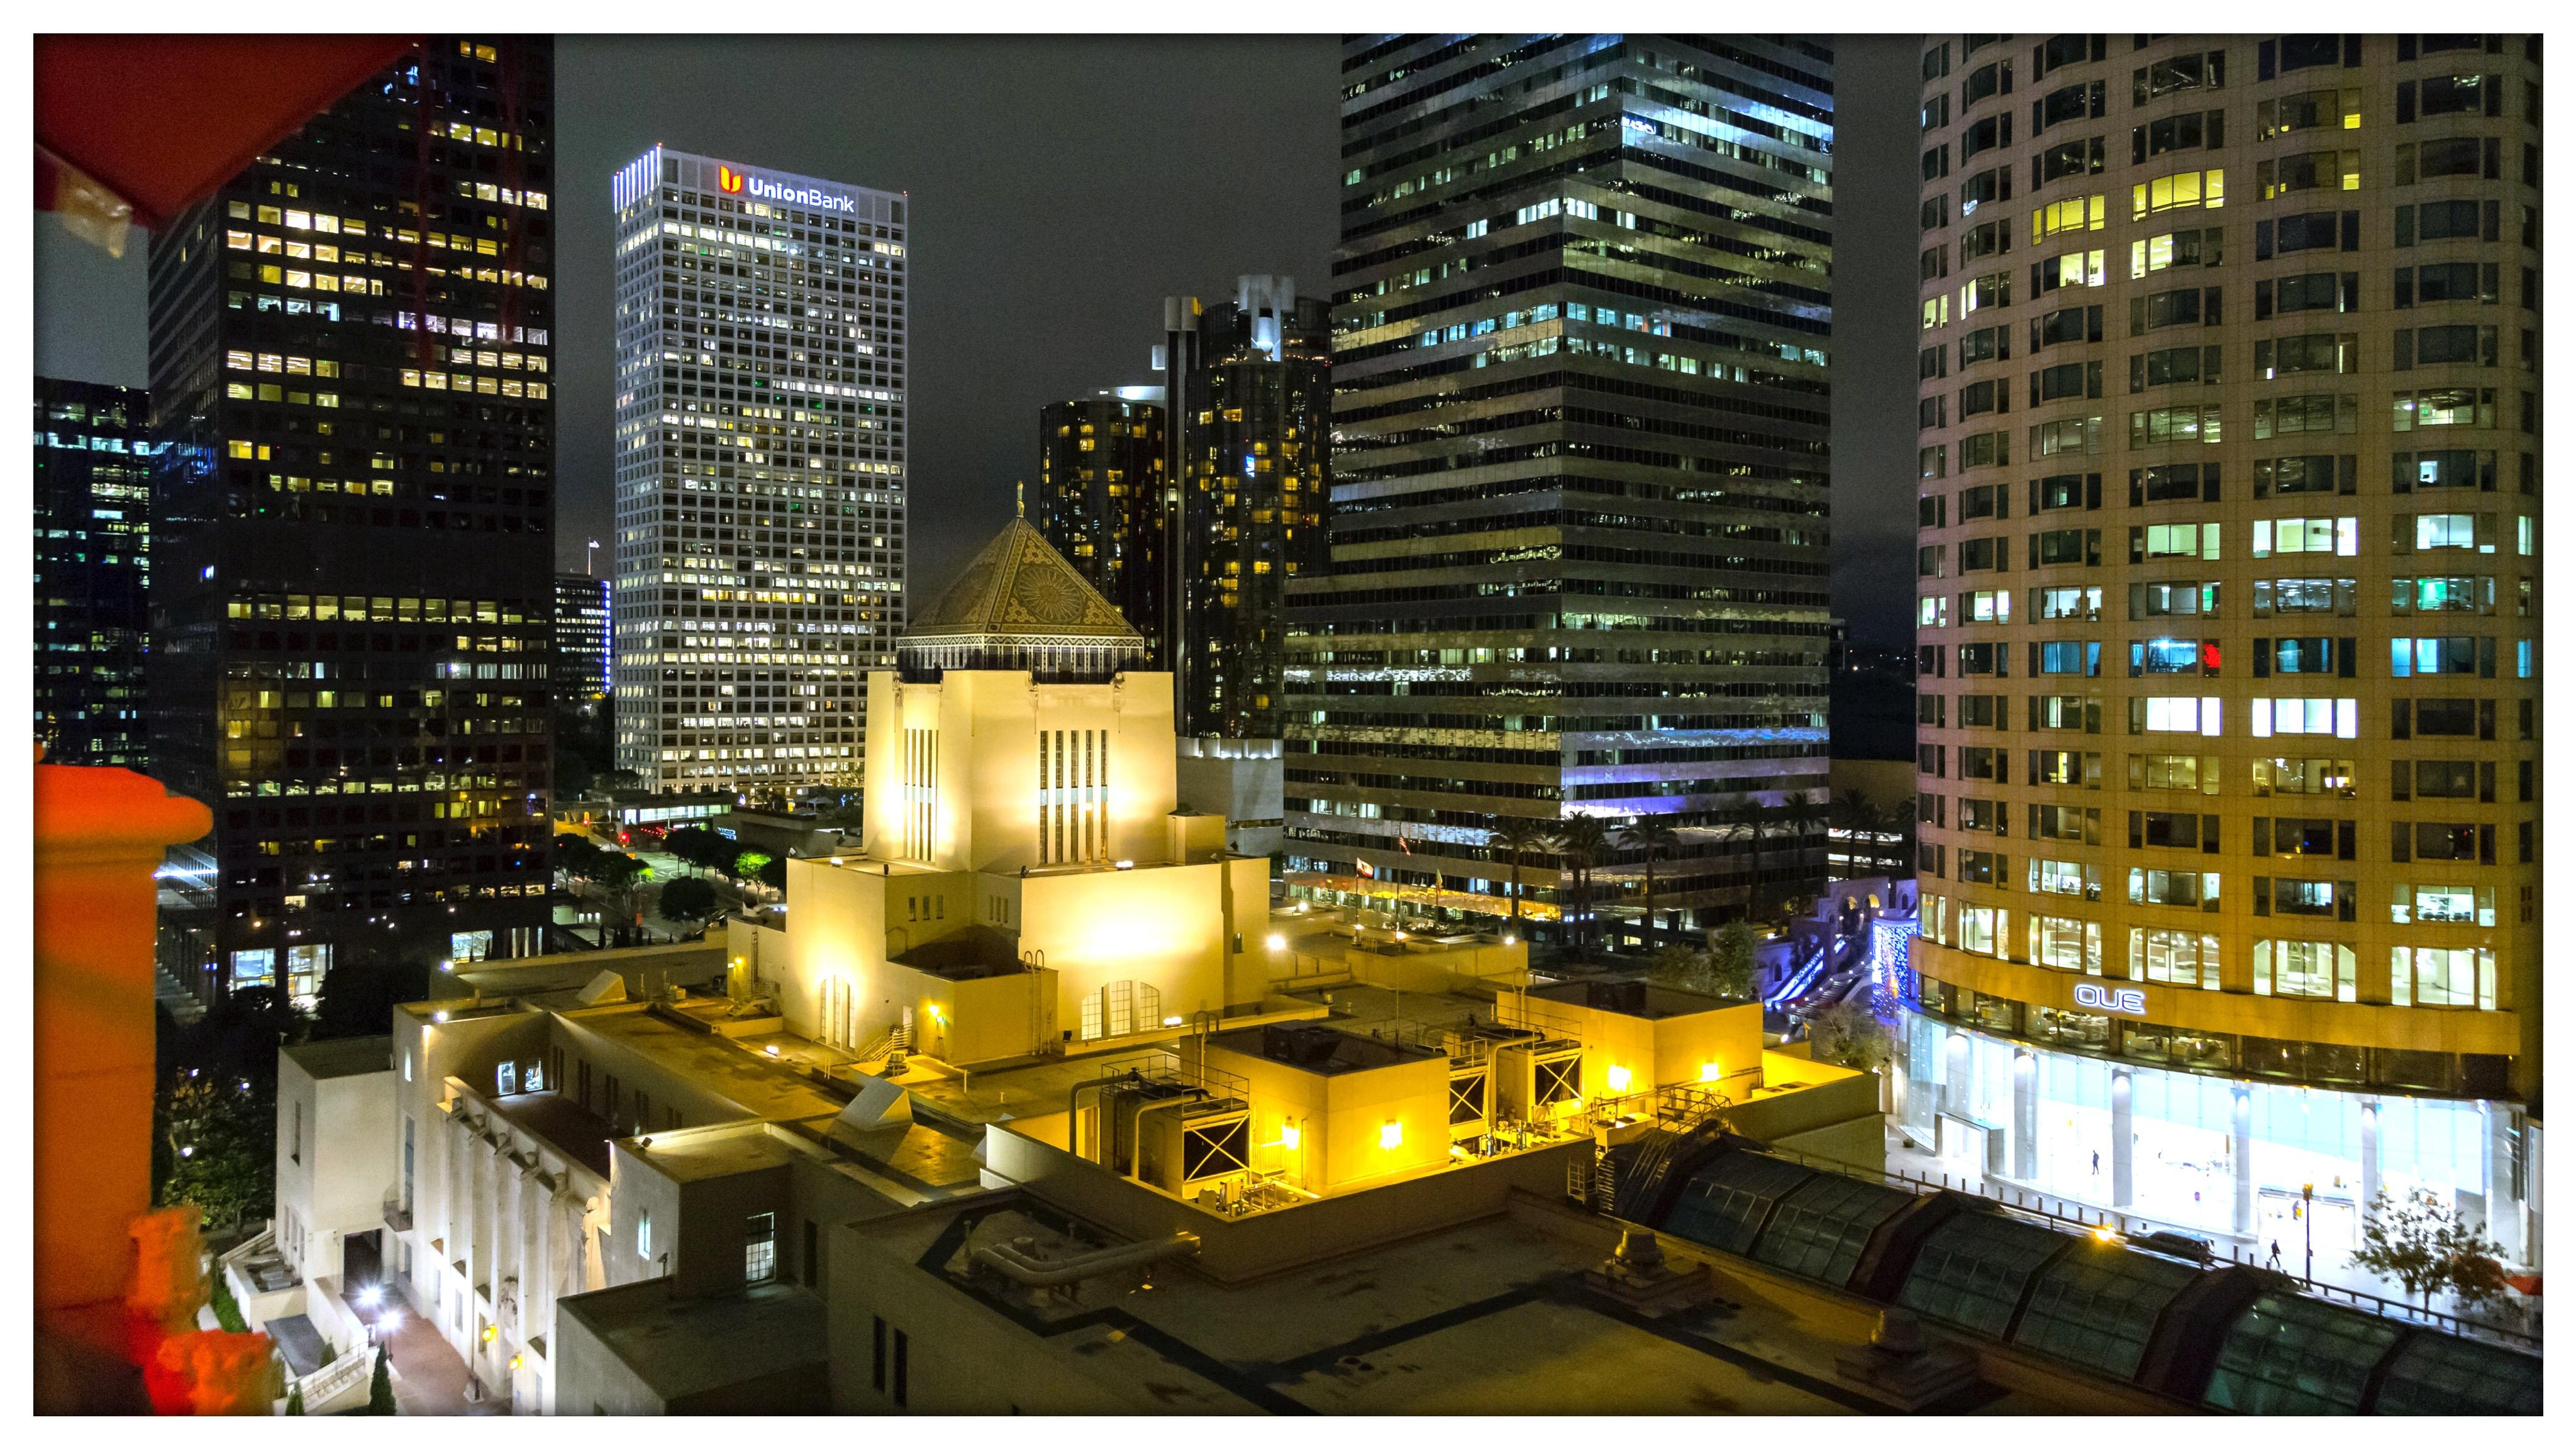 Nighttime view from the rooftop patio (L.A. Public Library in the foreground)